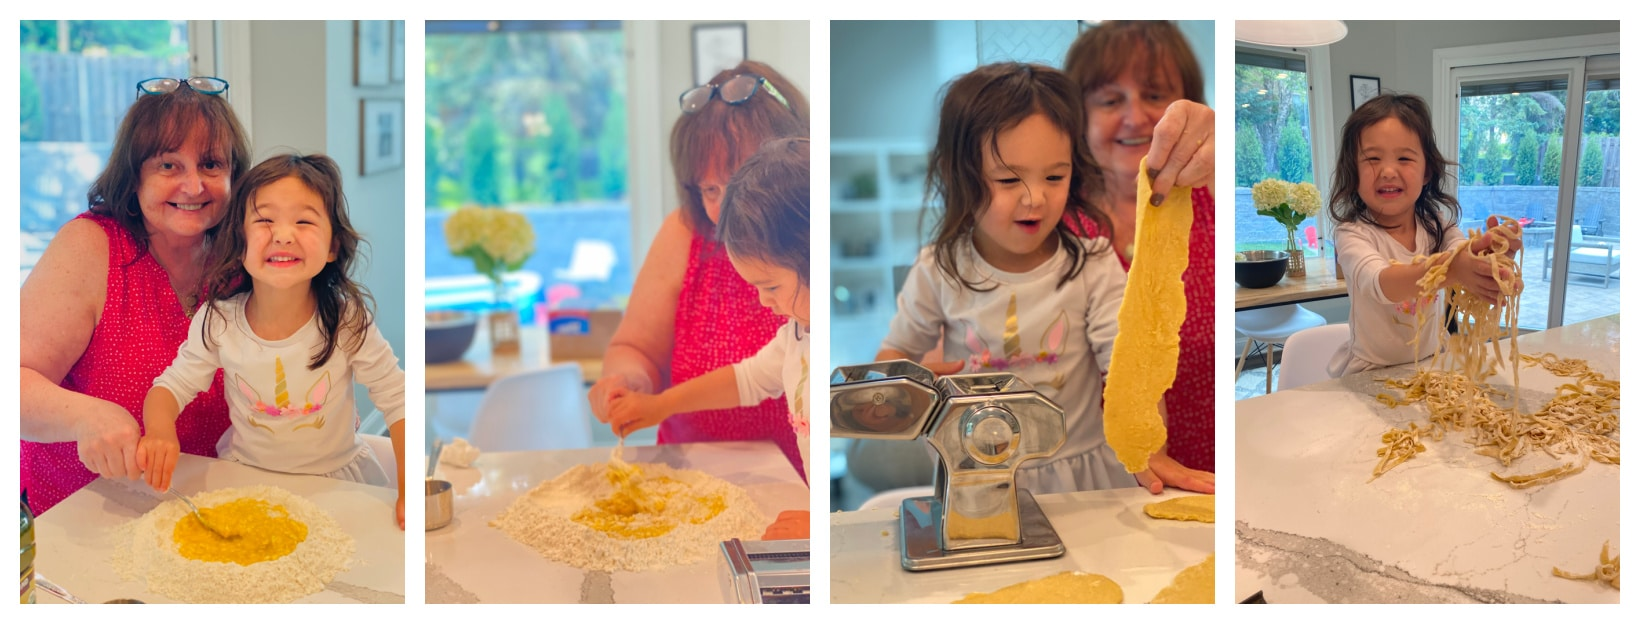 GG and Zoey making homemade pasta together